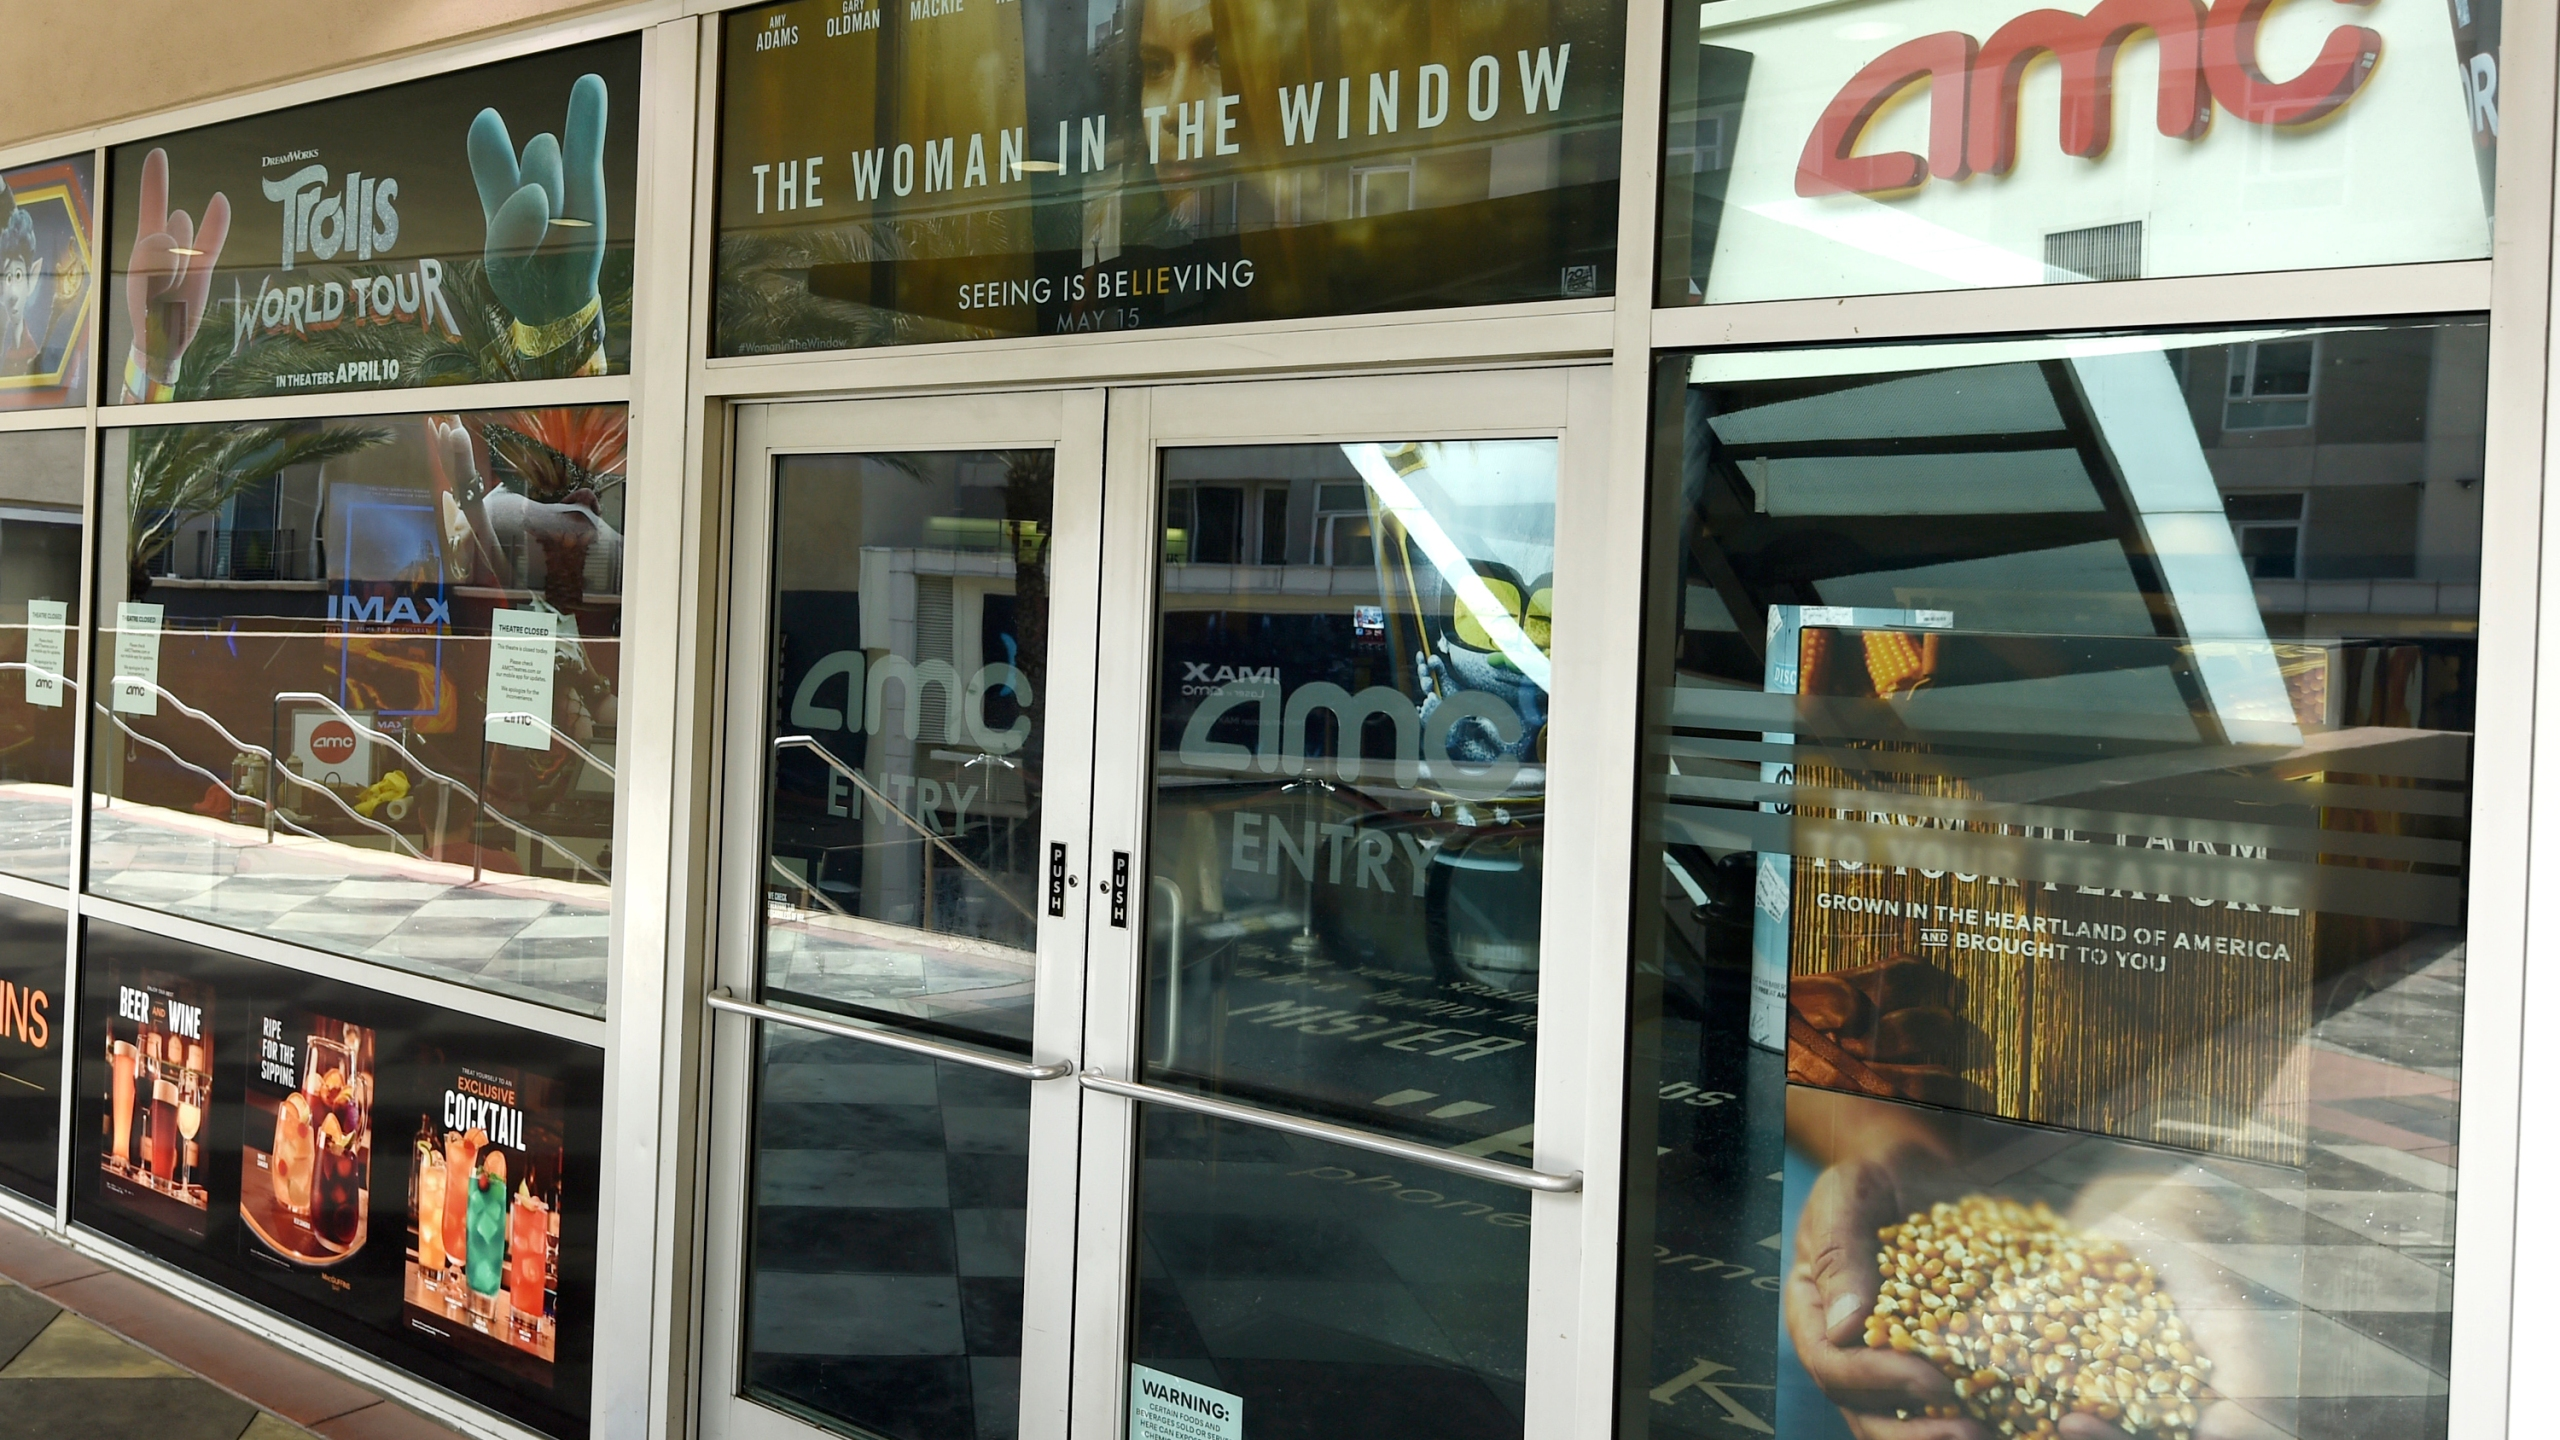 Amc Universal Agree To Shrink Theatrical Window To 17 Days Abc27